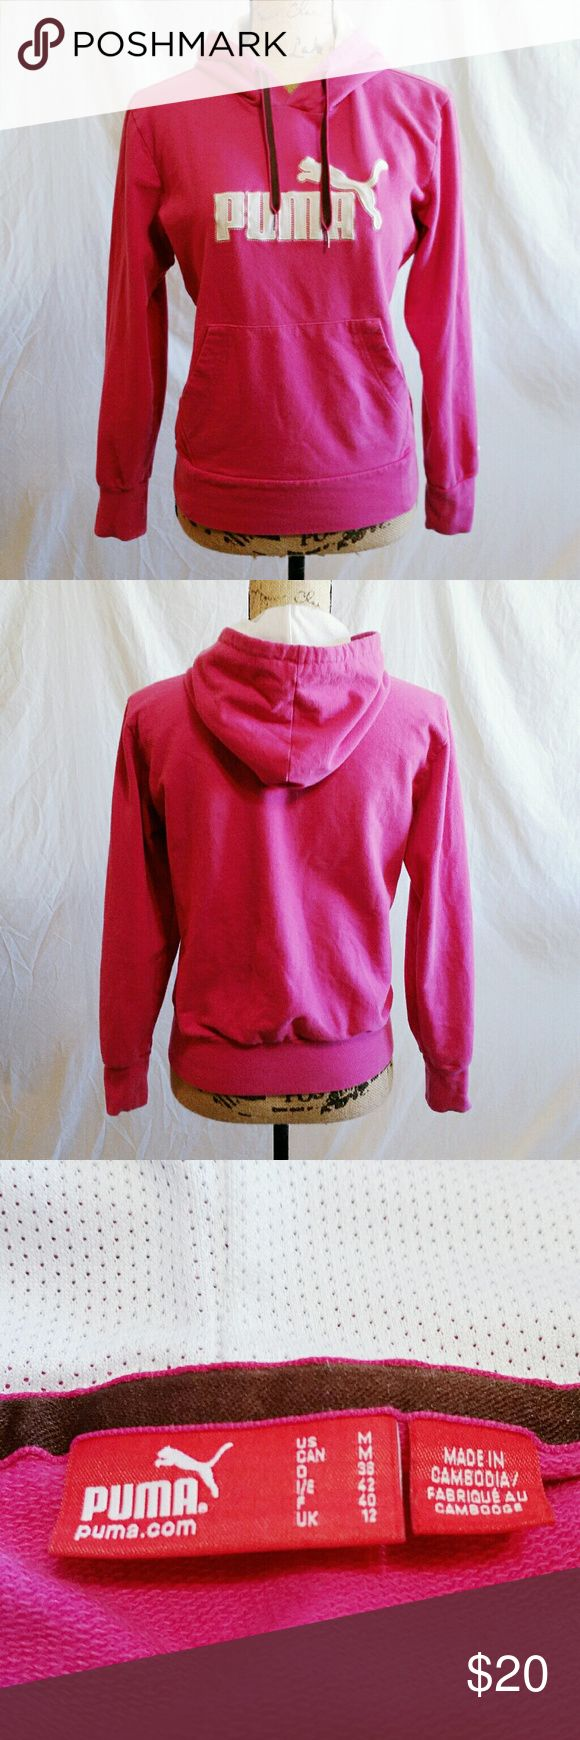 Pink Puma Pullover Hoodie - Size Medium *Reasonable offers accepted!* Pink Puma Pullover Hoodie with mesh hood lining. Size Medium. Excellent used condition. No imperfections whatsoever. Puma Jackets & Coats